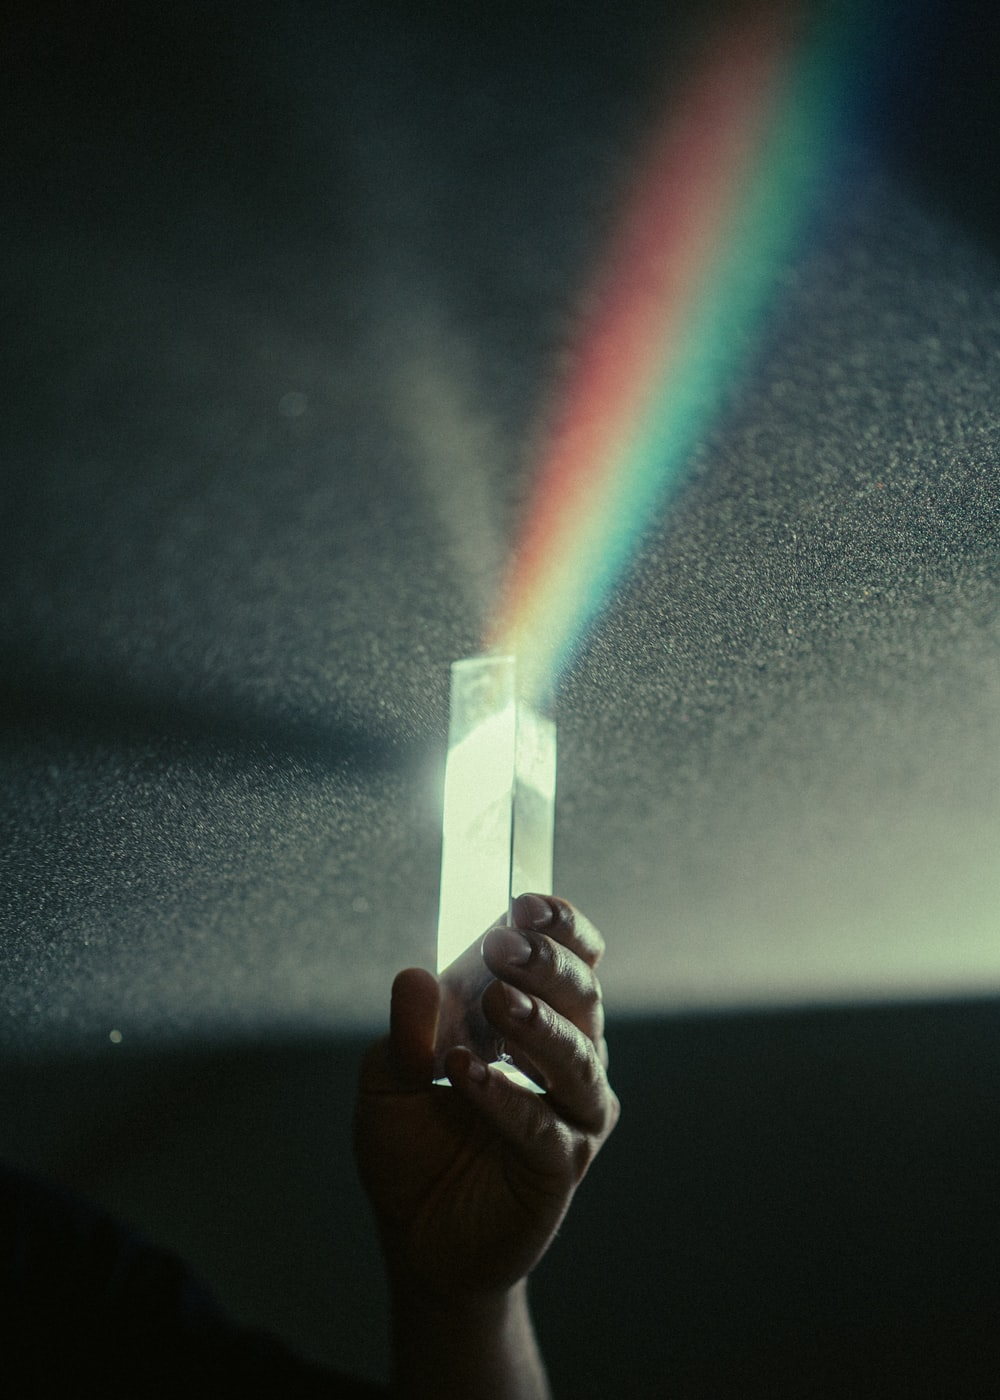 person holding white box with rainbow light